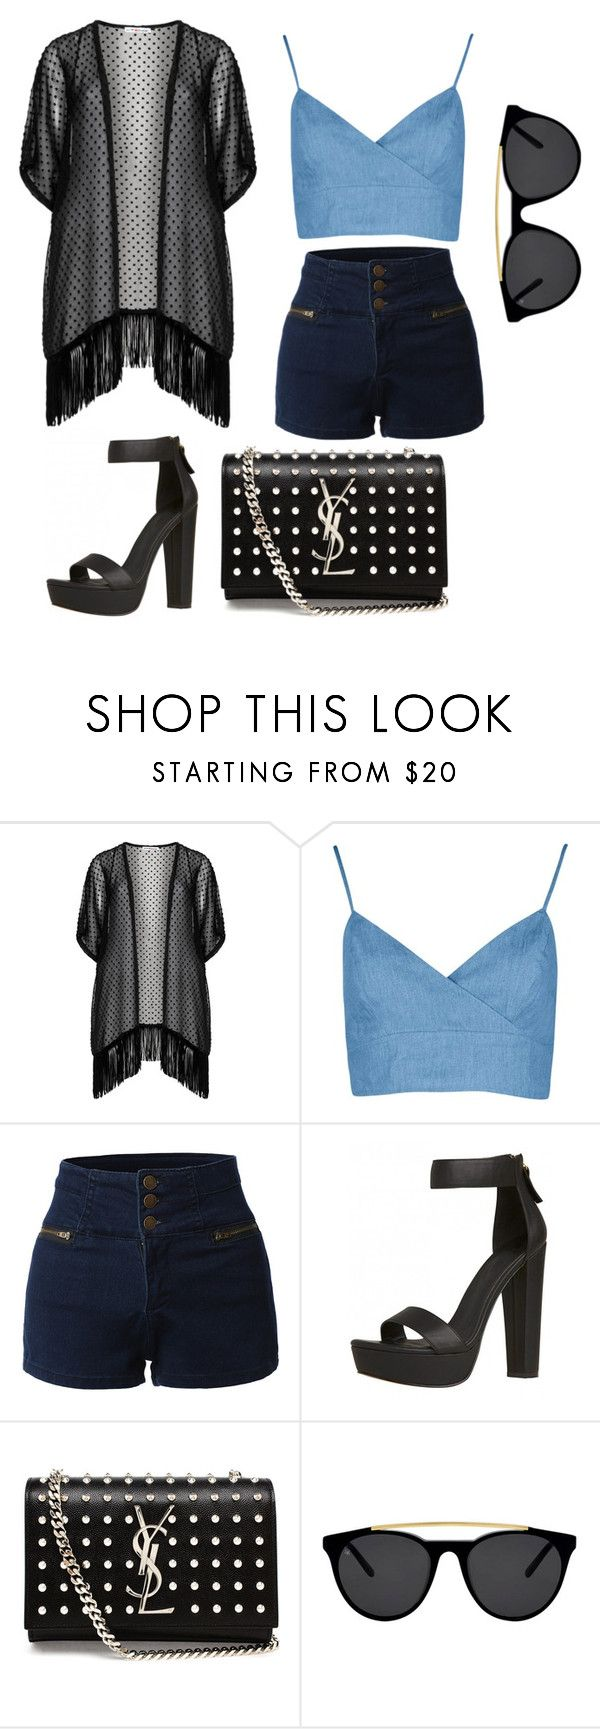 """Summer clothes"" by snowingskies ❤ liked on Polyvore featuring Maxima, Boohoo, LE3NO, Yves Saint Laurent and Smoke x Mirrors"